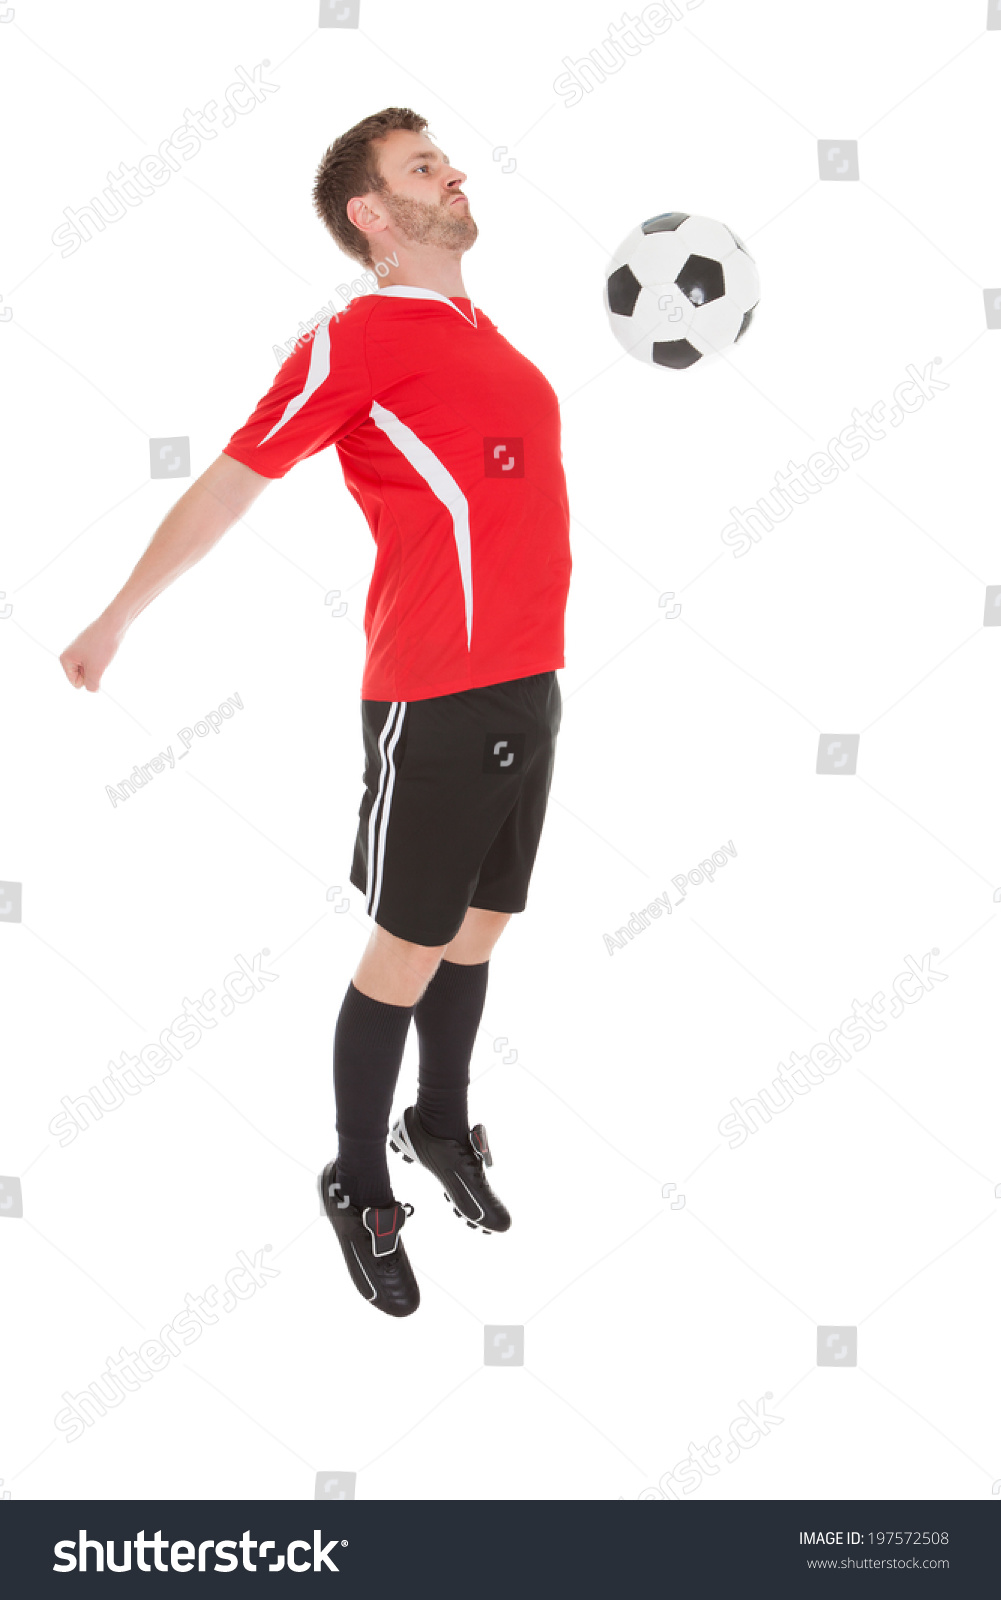 2c42bfc7f football player kicking controlling ball with chest isolated on white  background wearing red jersey and socks and black shorts on green grass  pitch